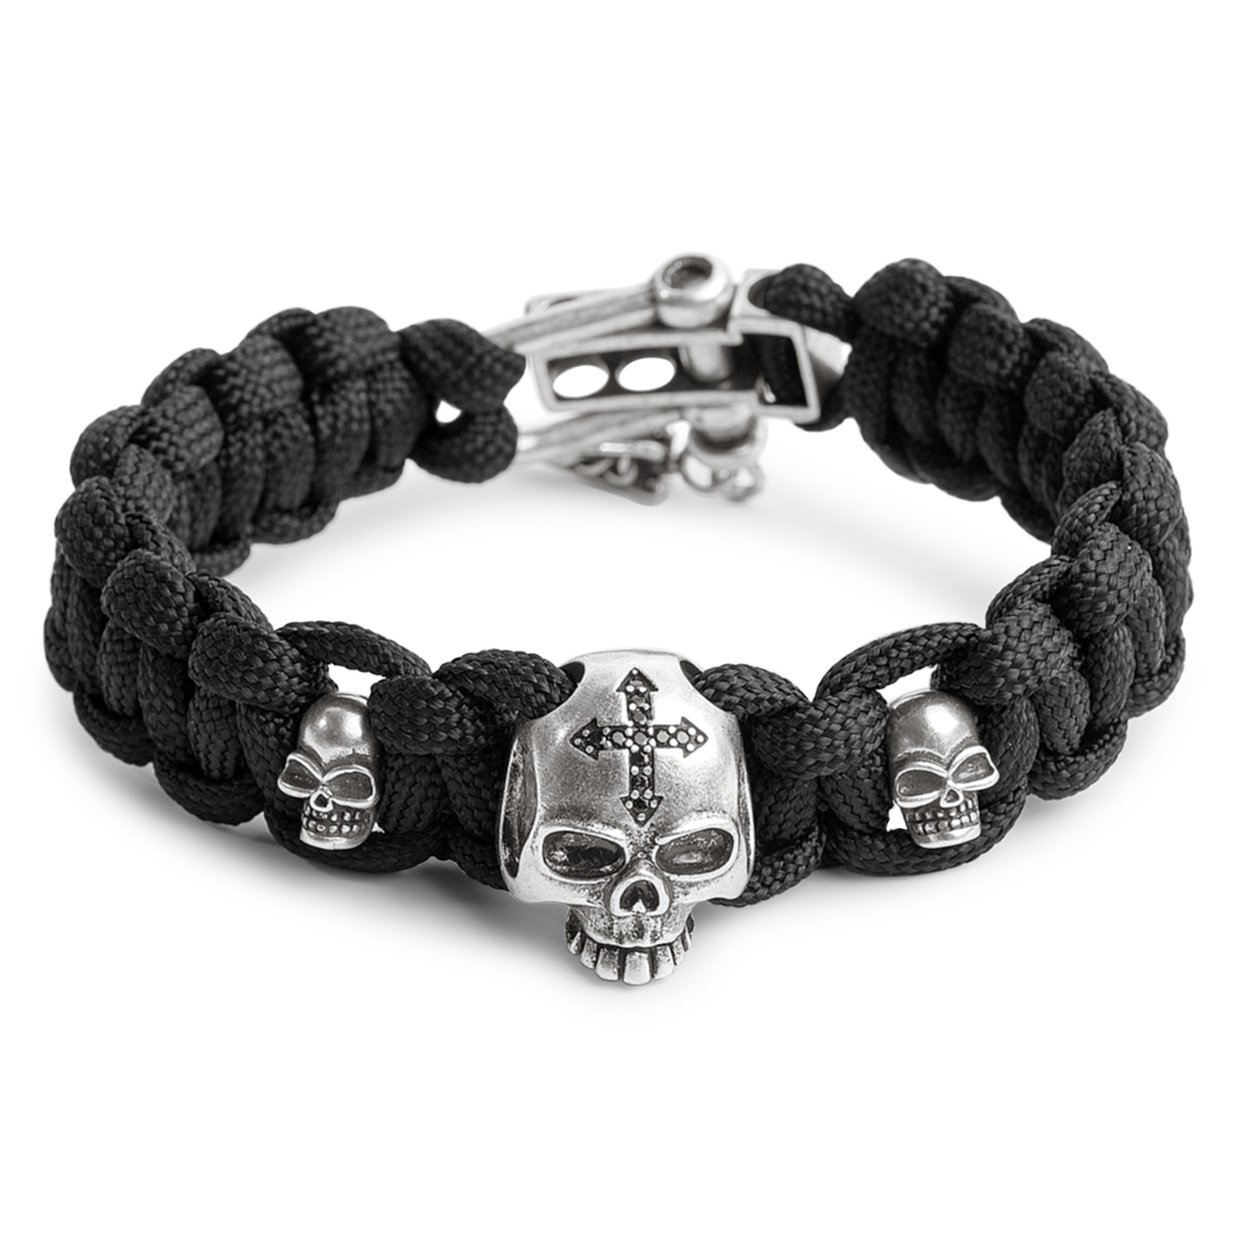 Kayder Antique Silver Skull Cross Charm Paracord Bracelet with Black Parachute Cord Weave & Adjustable D Shackle Closure, Cool Gothic Jewelry Gift for Men and Boys